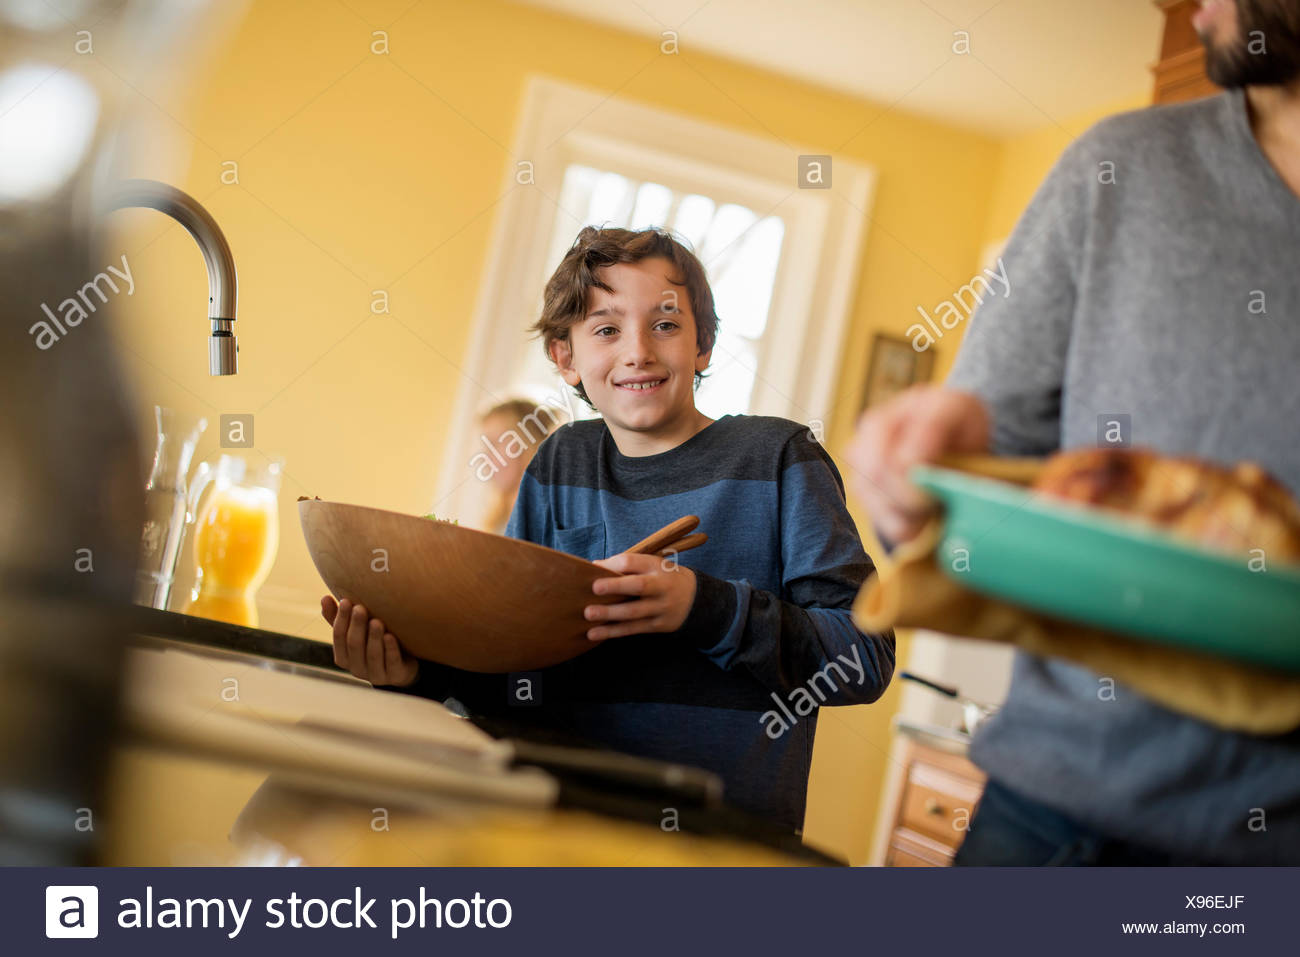 A woman carrying prepared food to the table. A boy with a large wooden bowl. - Stock Image